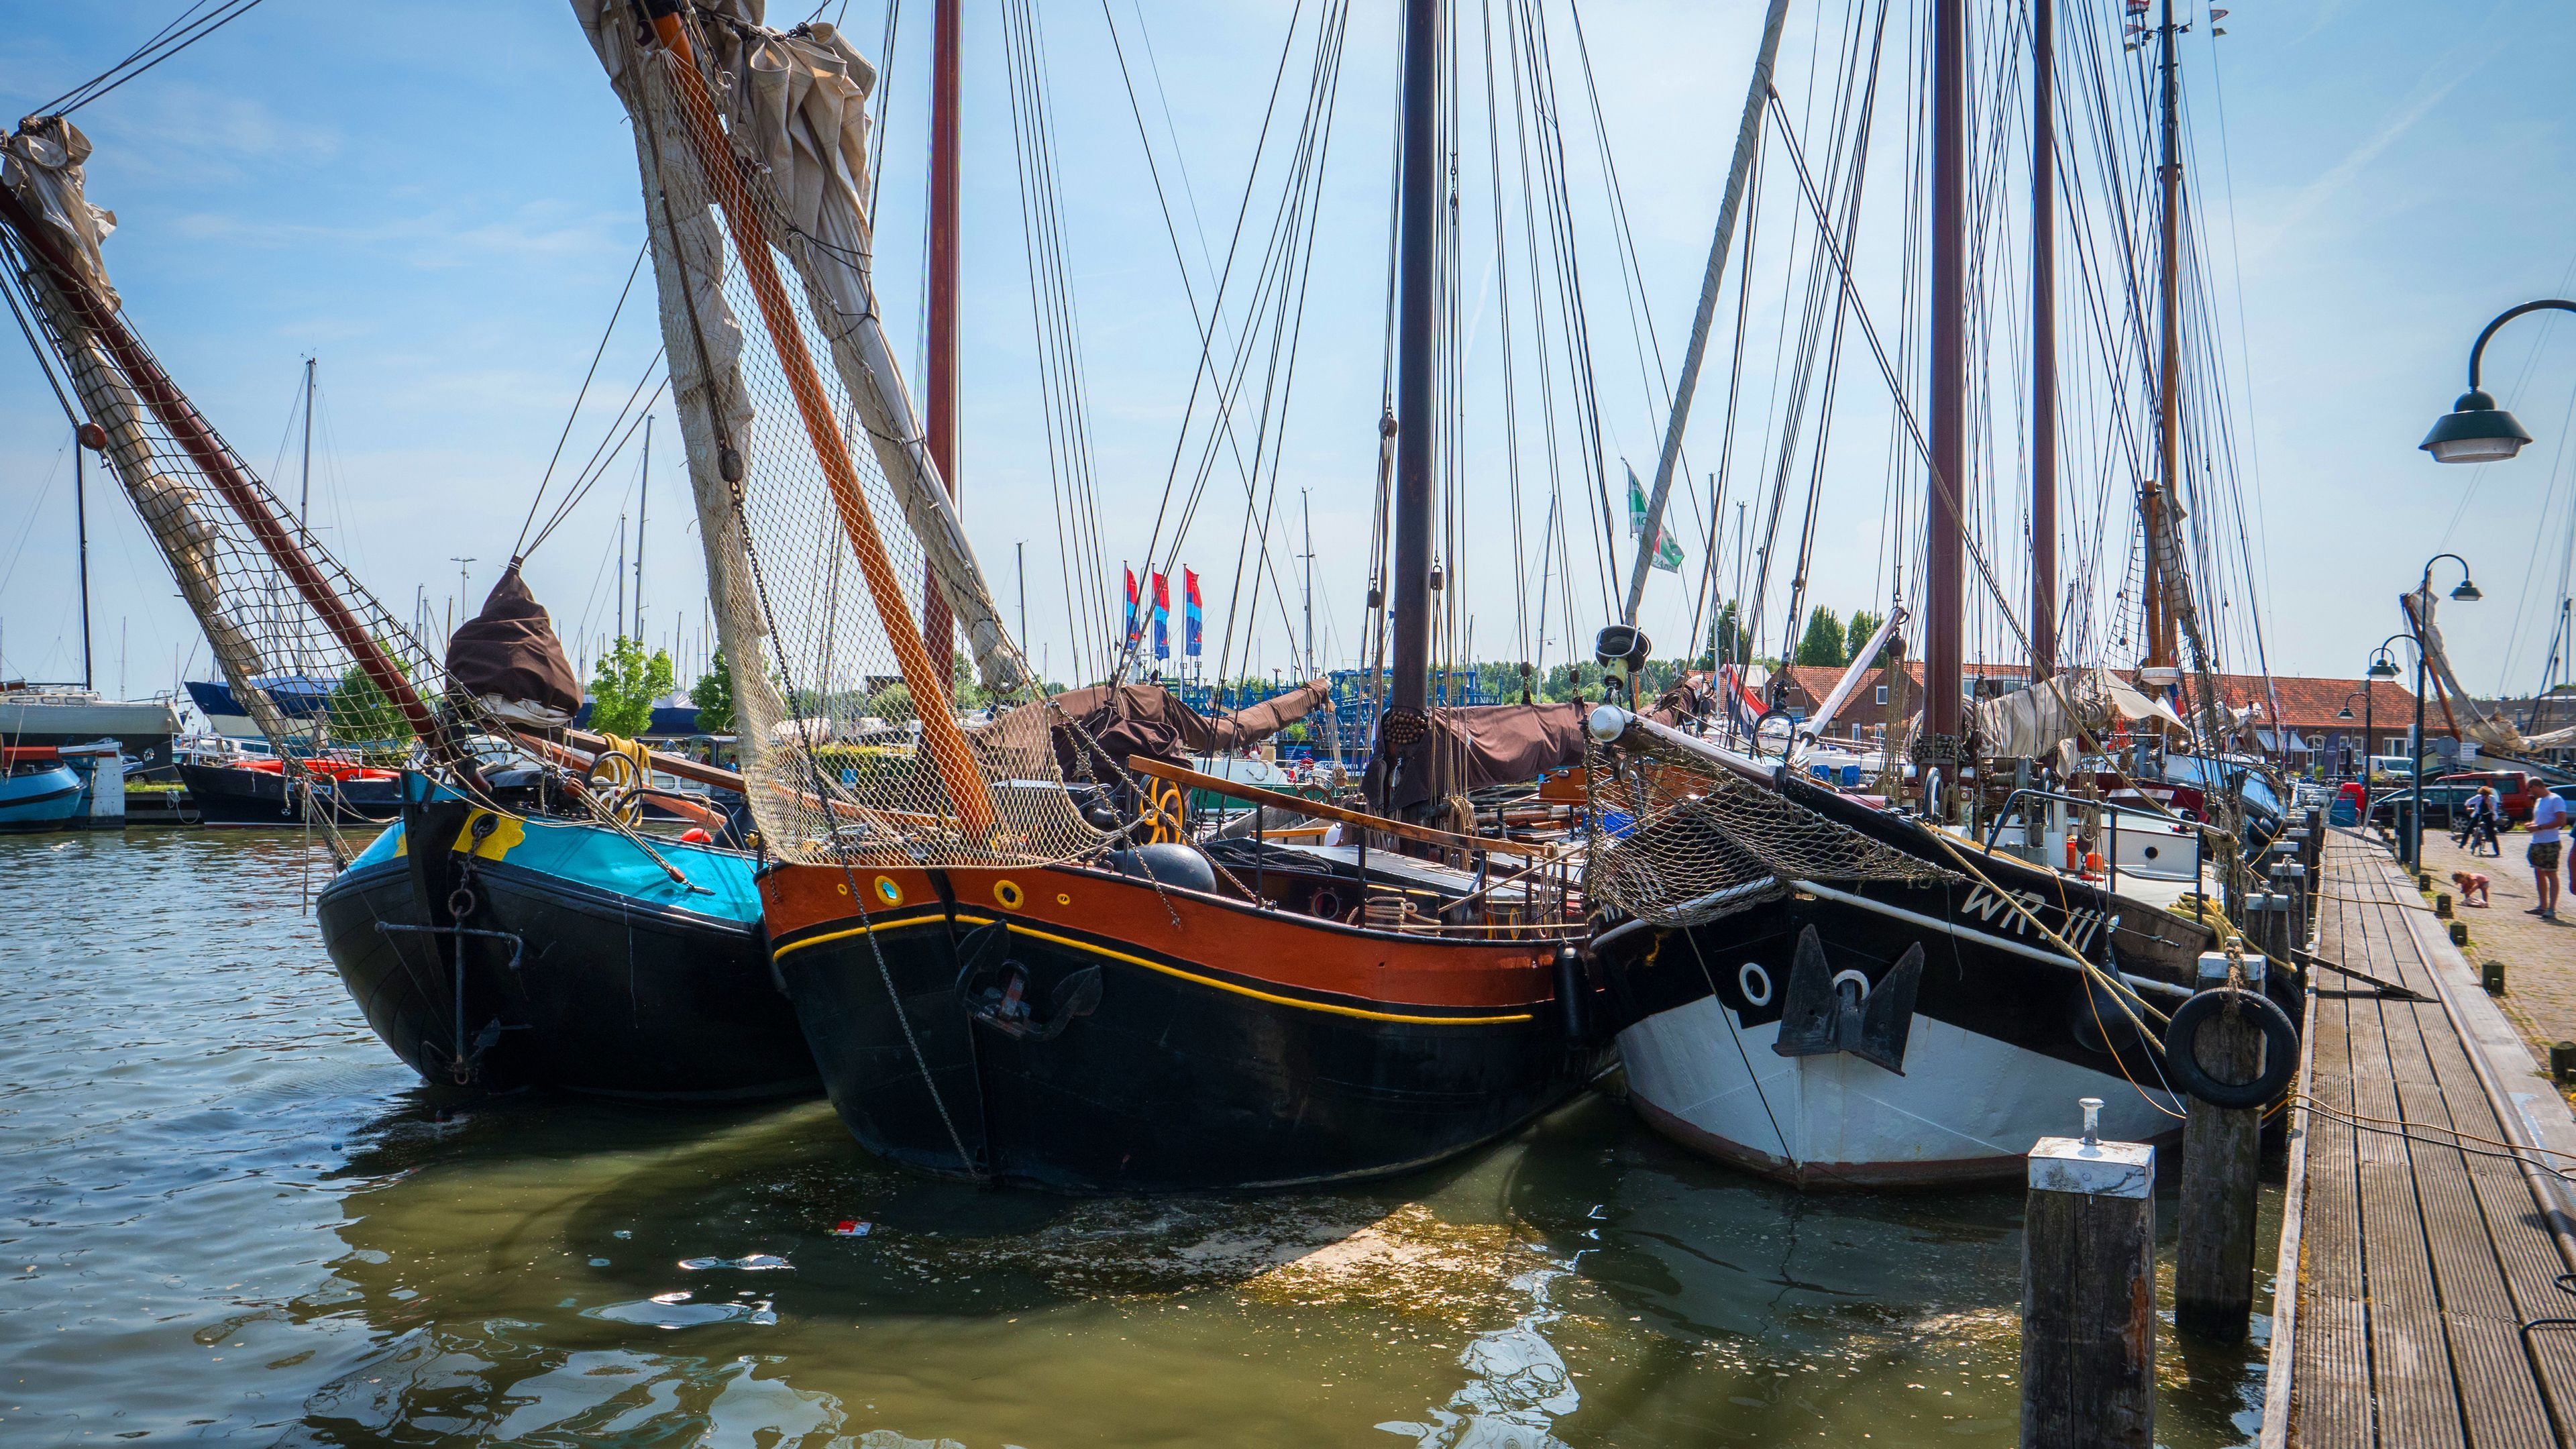 Boats moored in the Netherlands